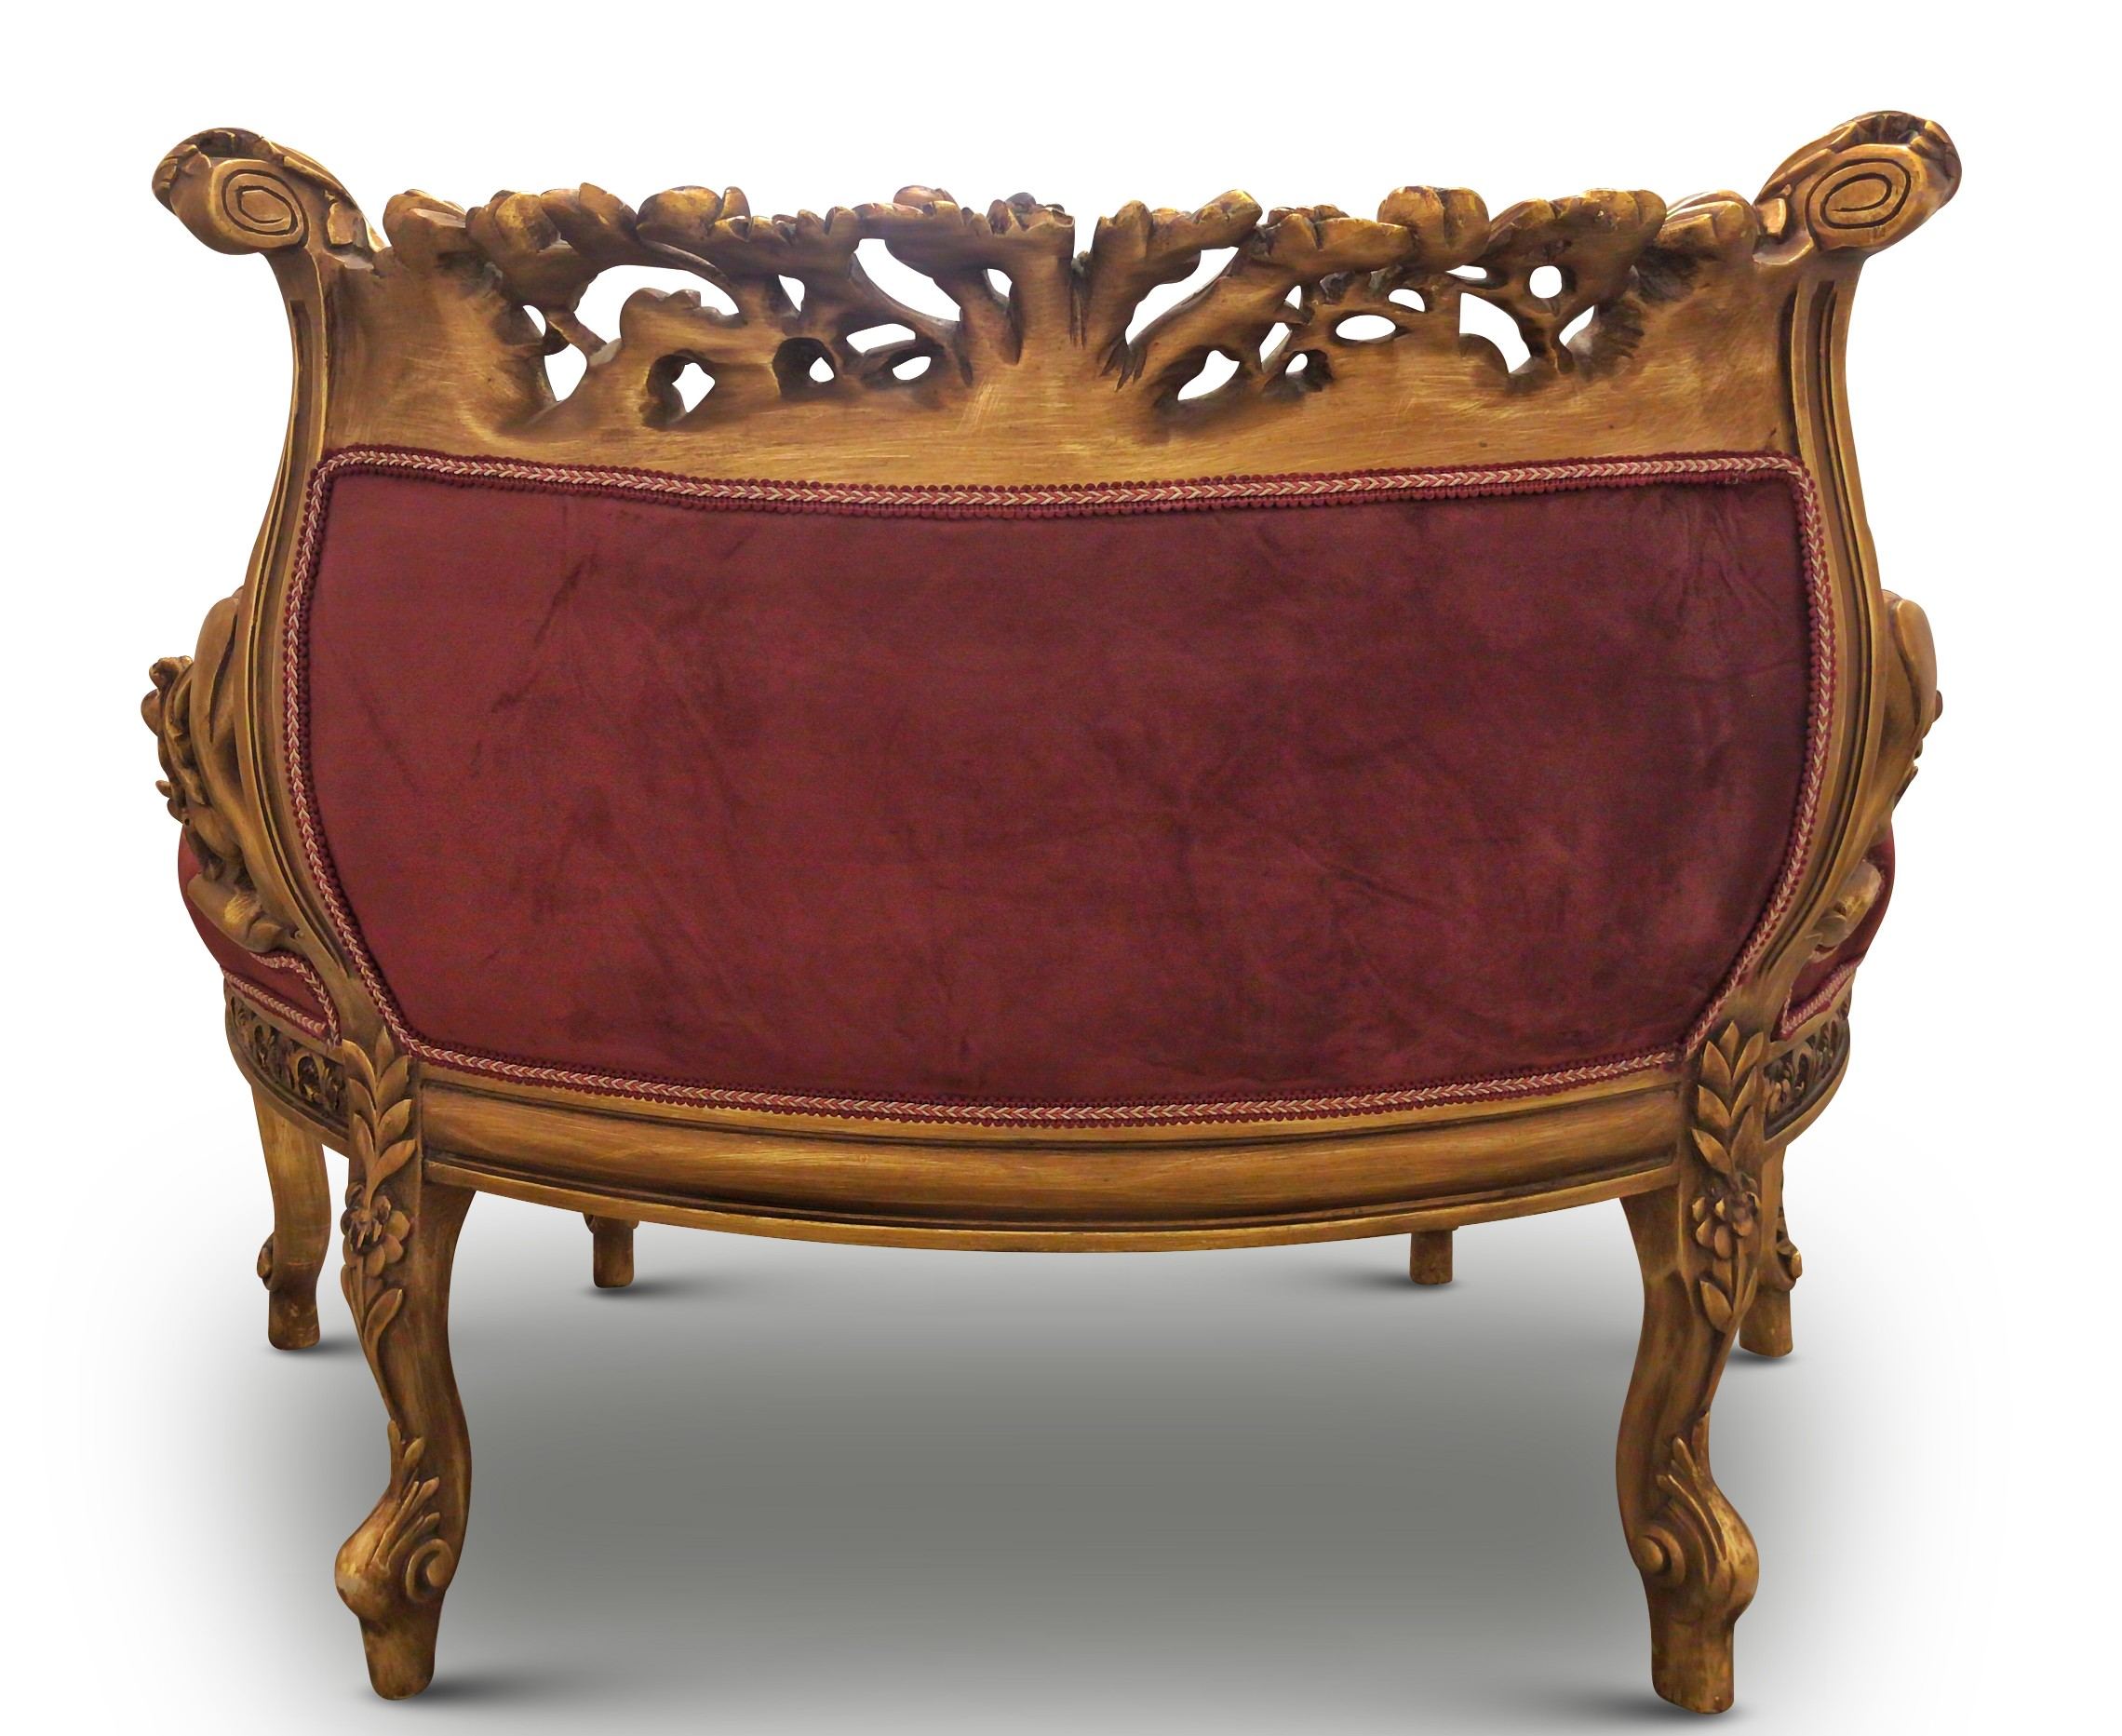 MADE TO ORDER / Antique Style, Aged Gold Leaf , Tufted Maroon Velvet, Banquette Sofa